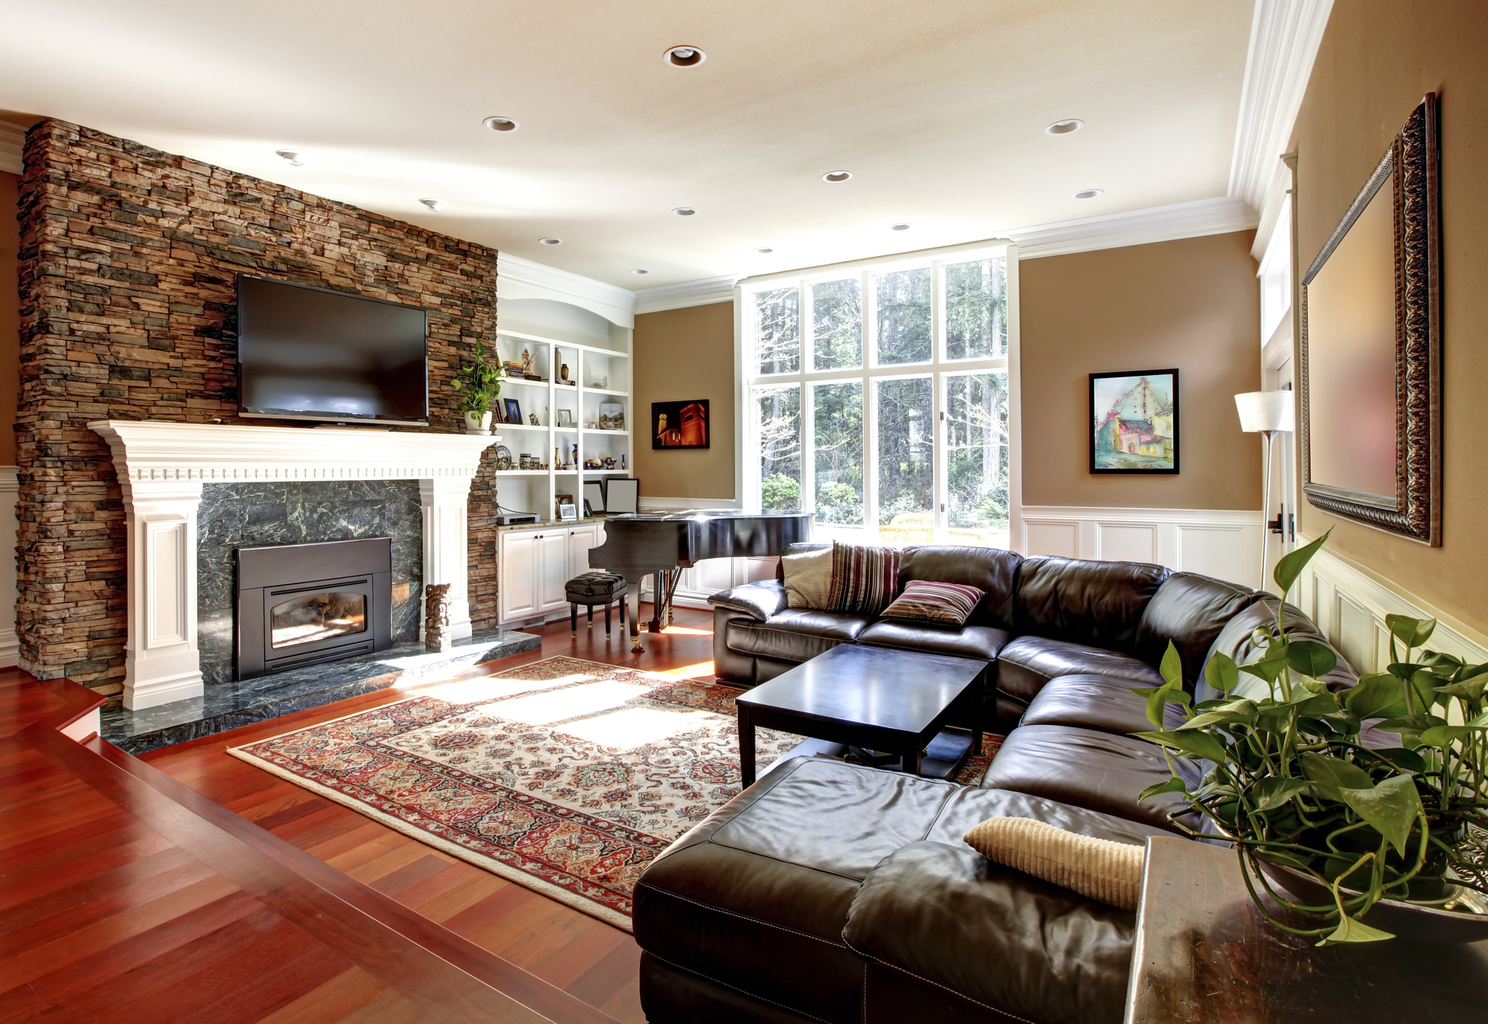 Living Room Decor, Home Decorating Tips